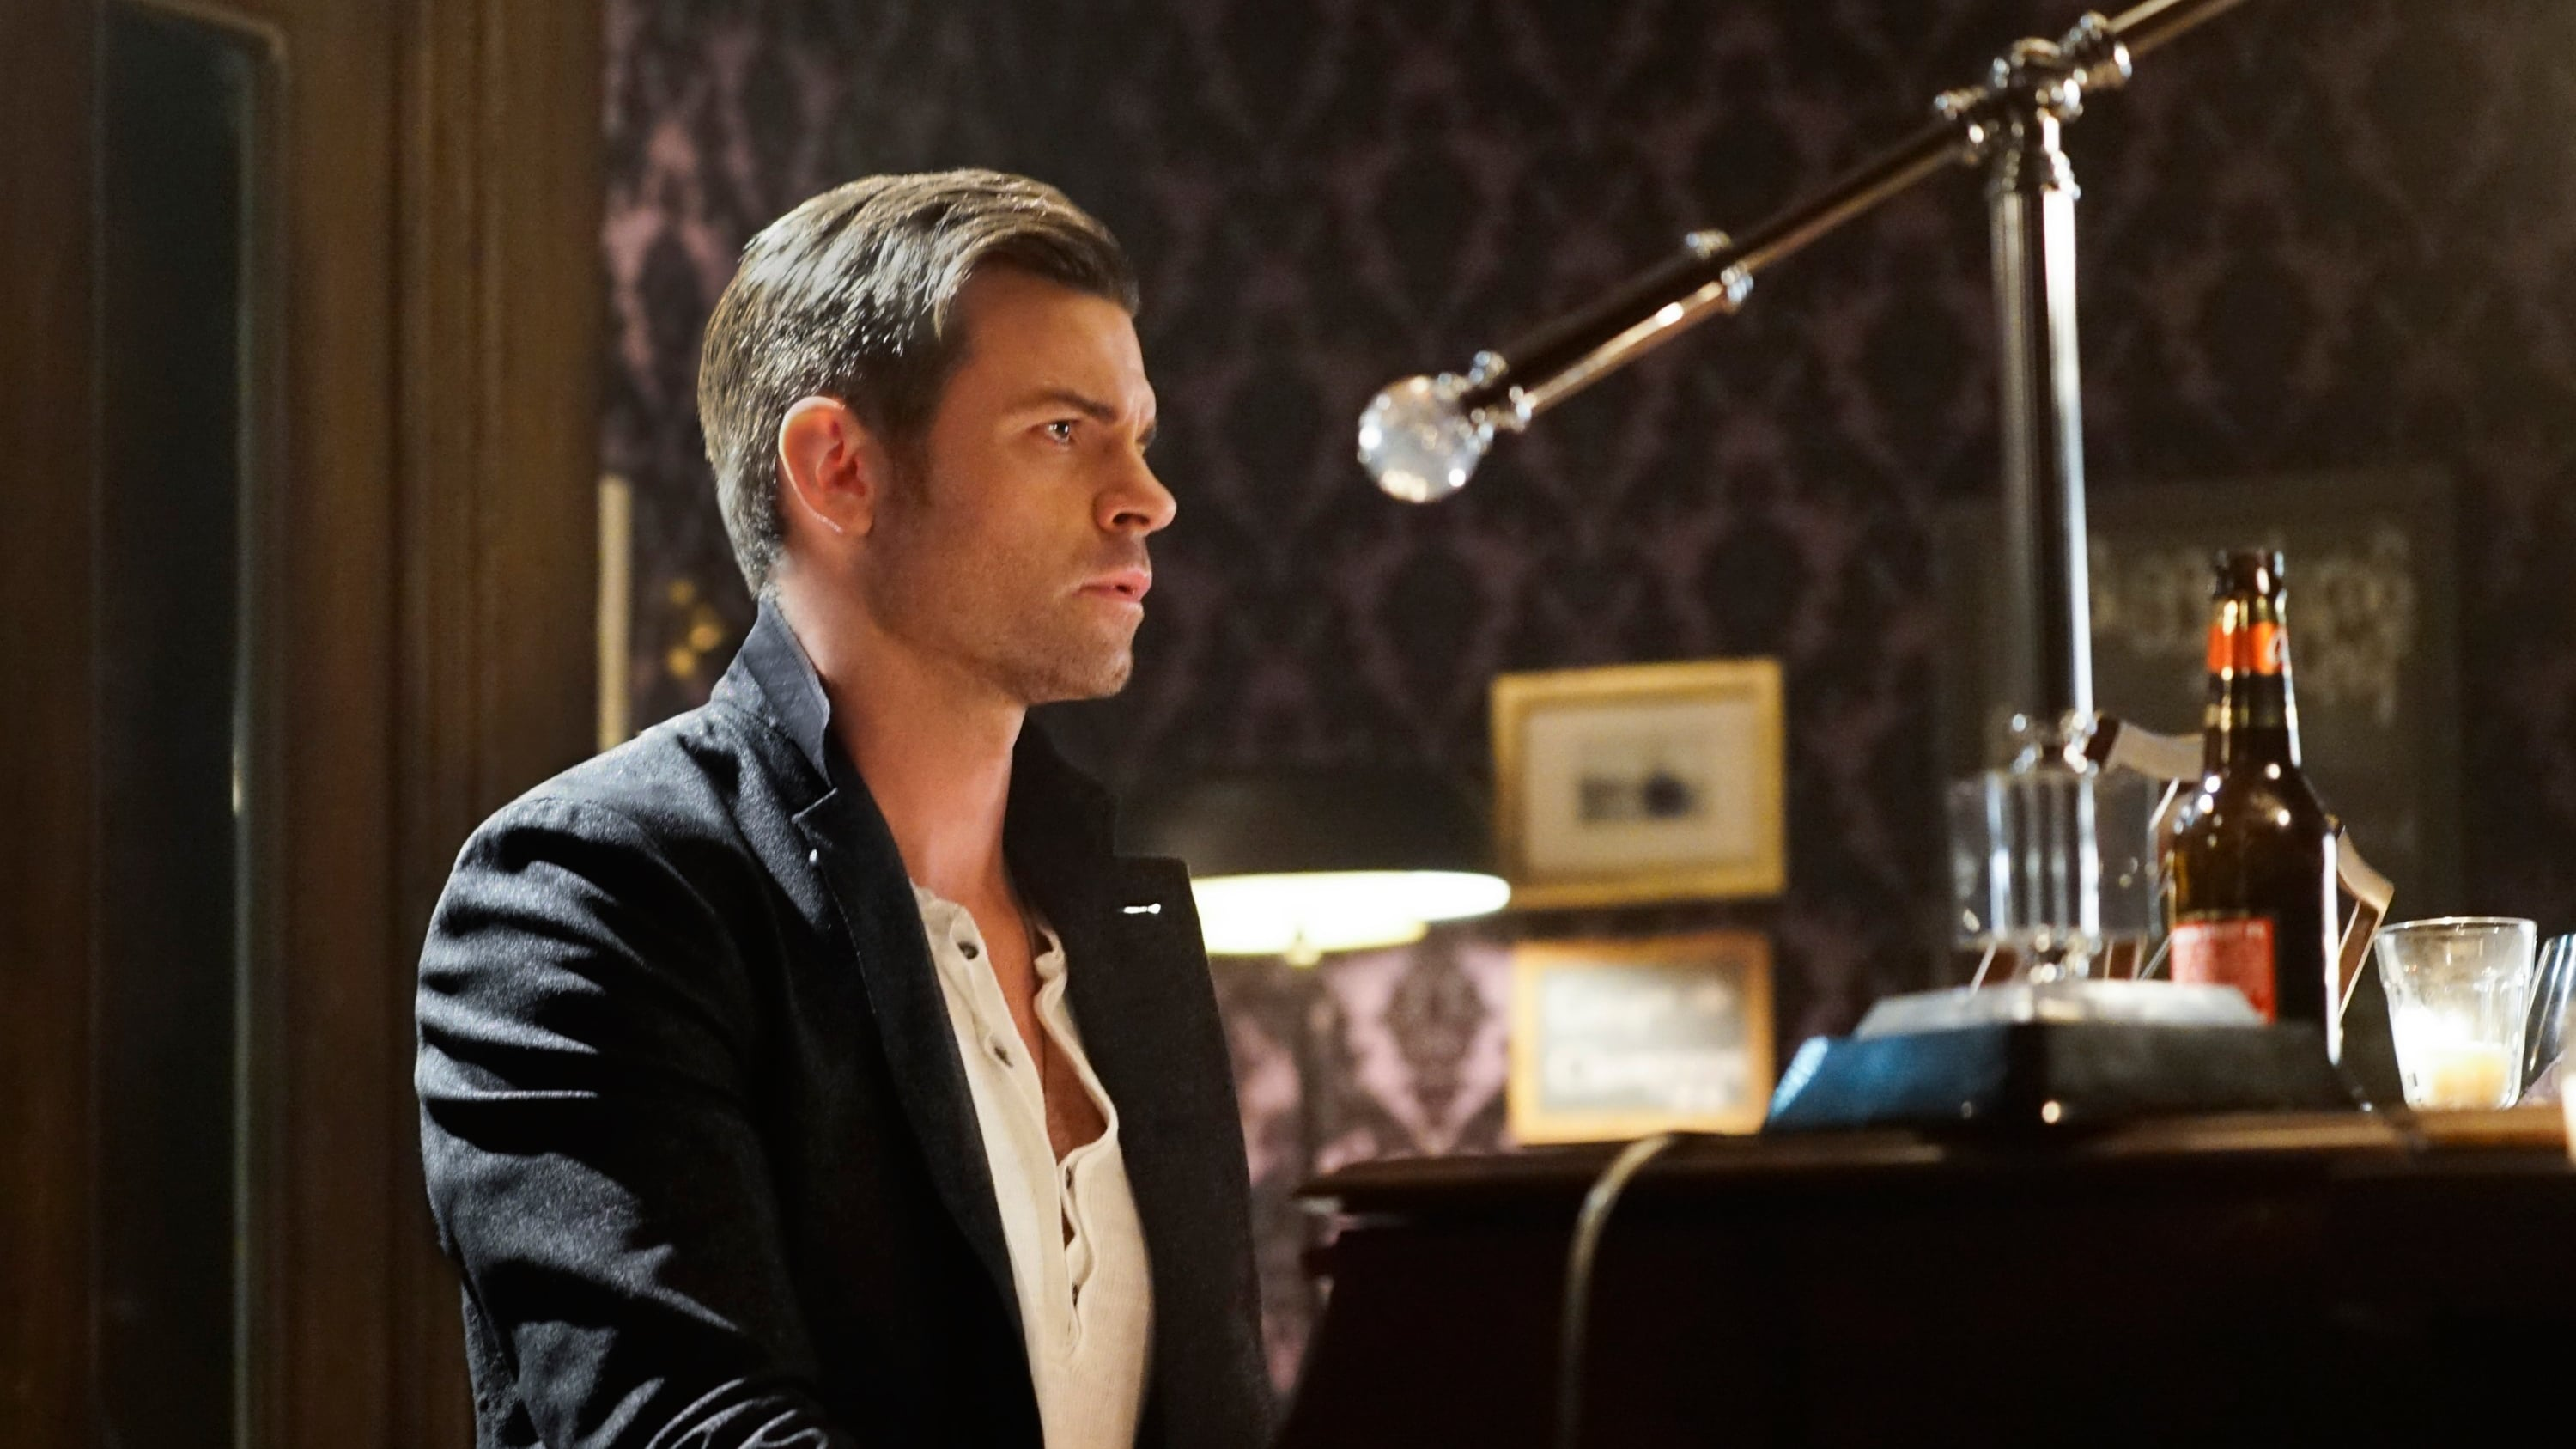 where can i watch the originals season 5 online